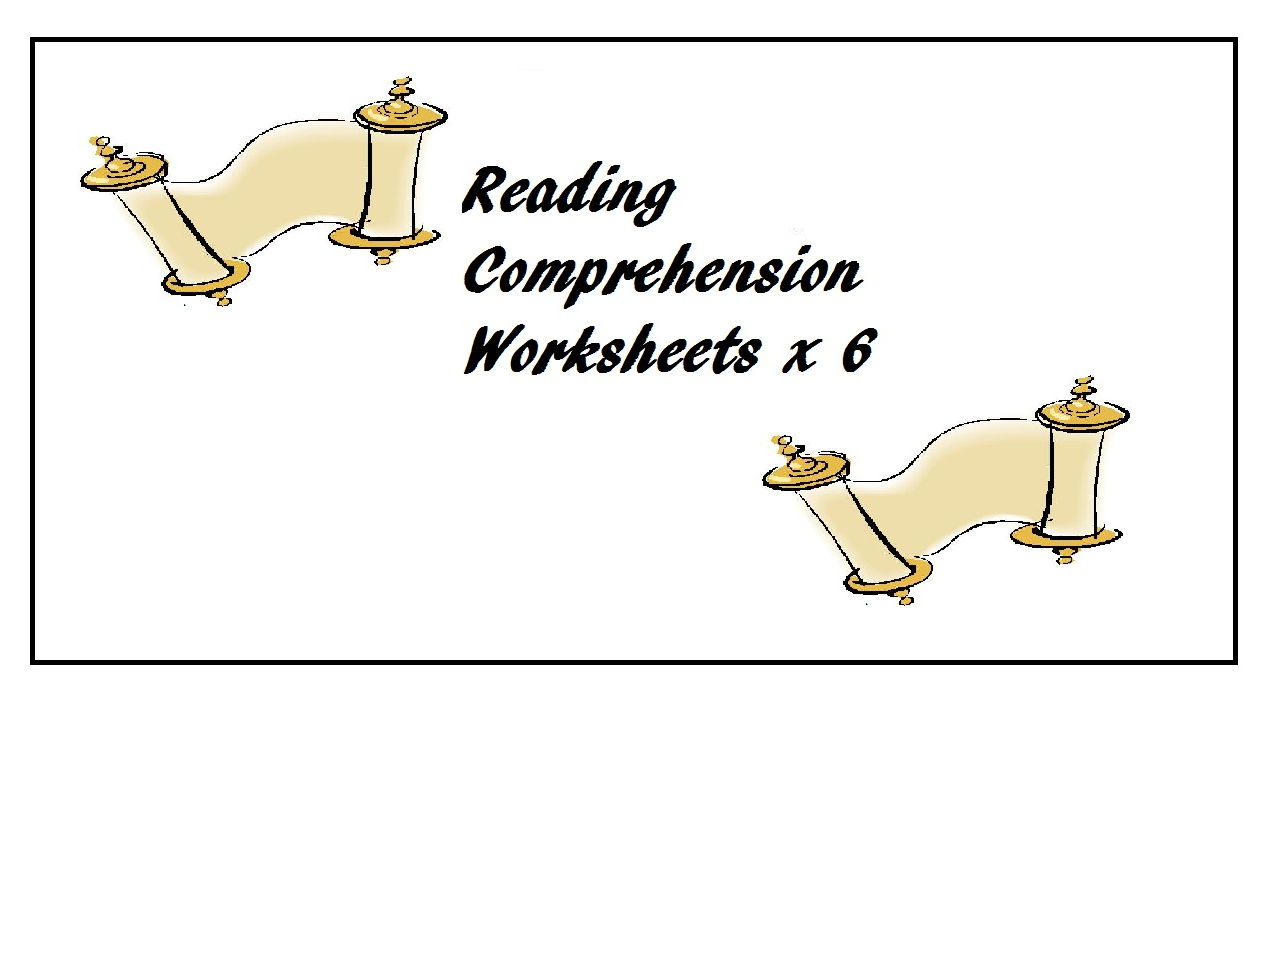 Reading Comprehension Worksheets X 6 60 Off